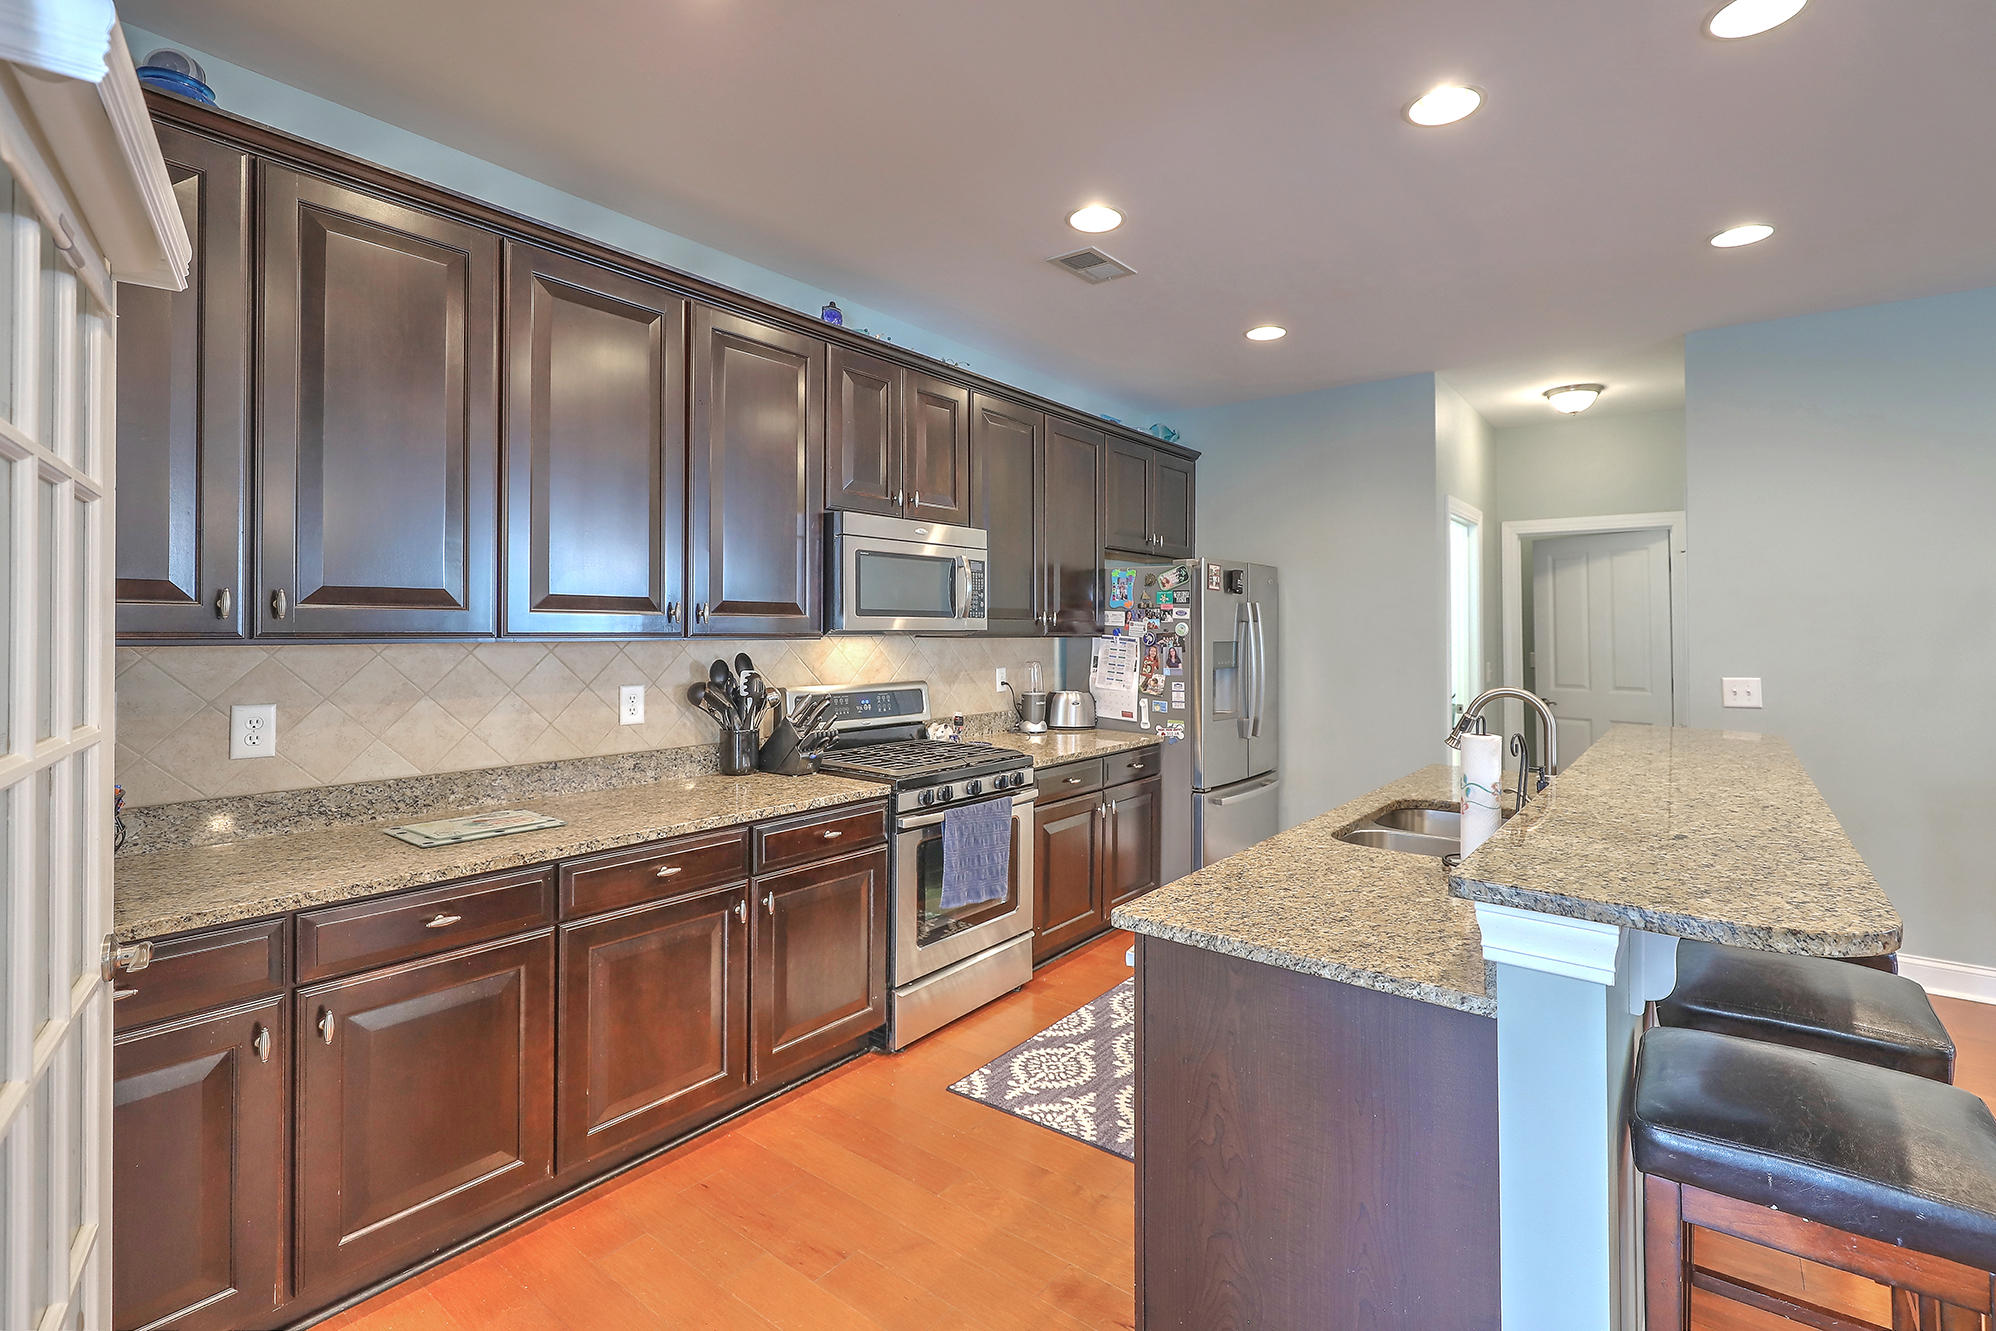 Rivertowne On The Wando Homes For Sale - 2105 Sandy Point, Mount Pleasant, SC - 0